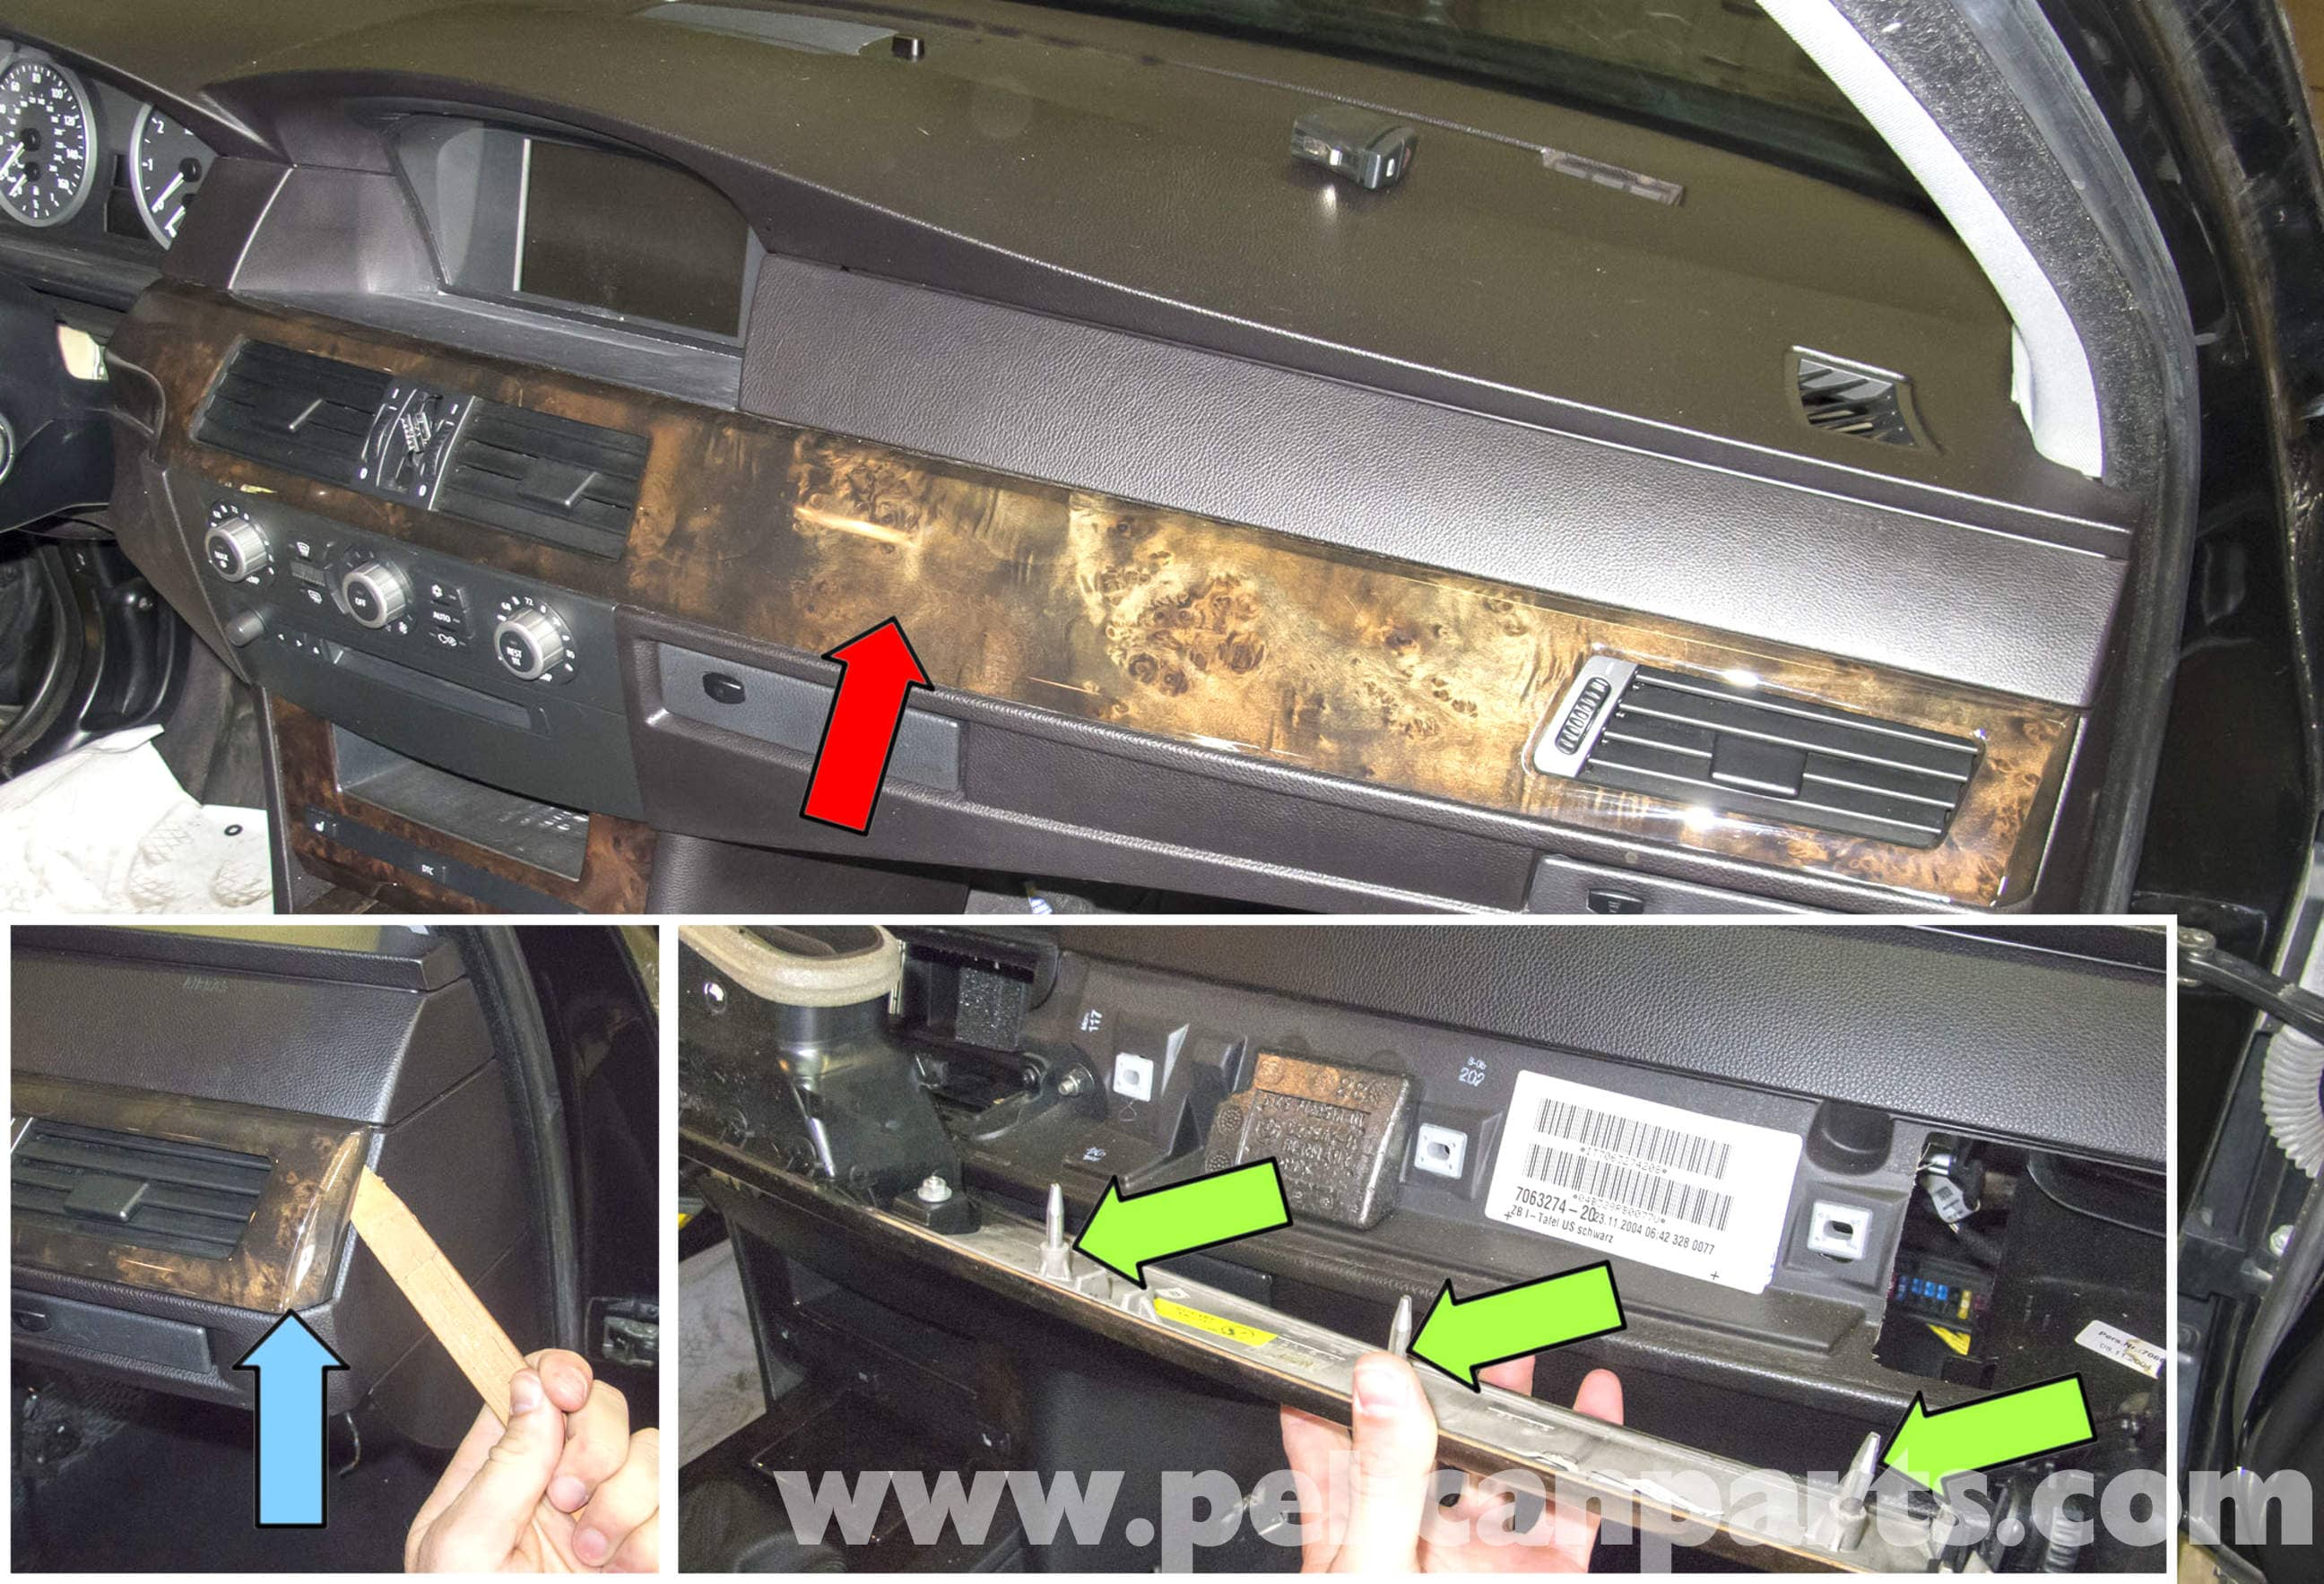 Bmw E60 5 Series Radio Ihka Panel And Seat Heat Controls